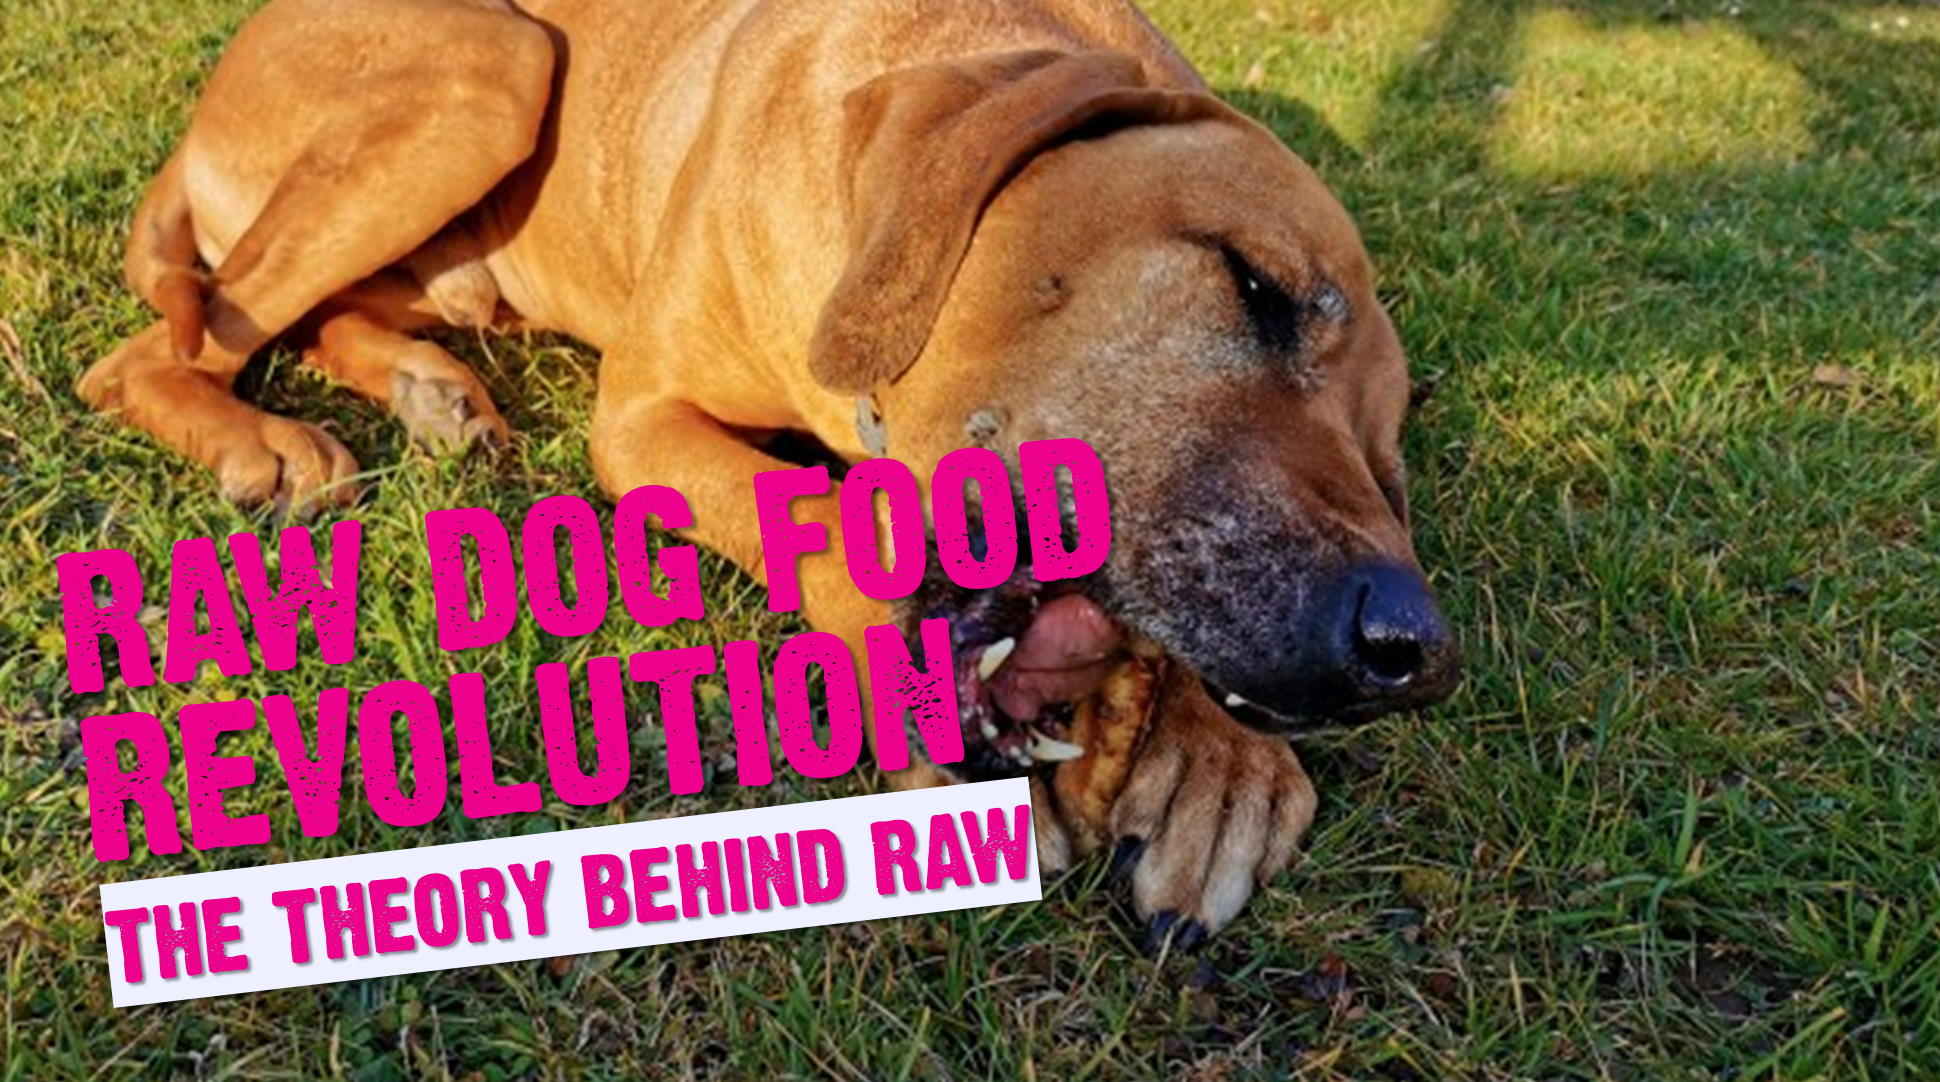 Raw Revolution - The Theory Behind The Raw Food Diet